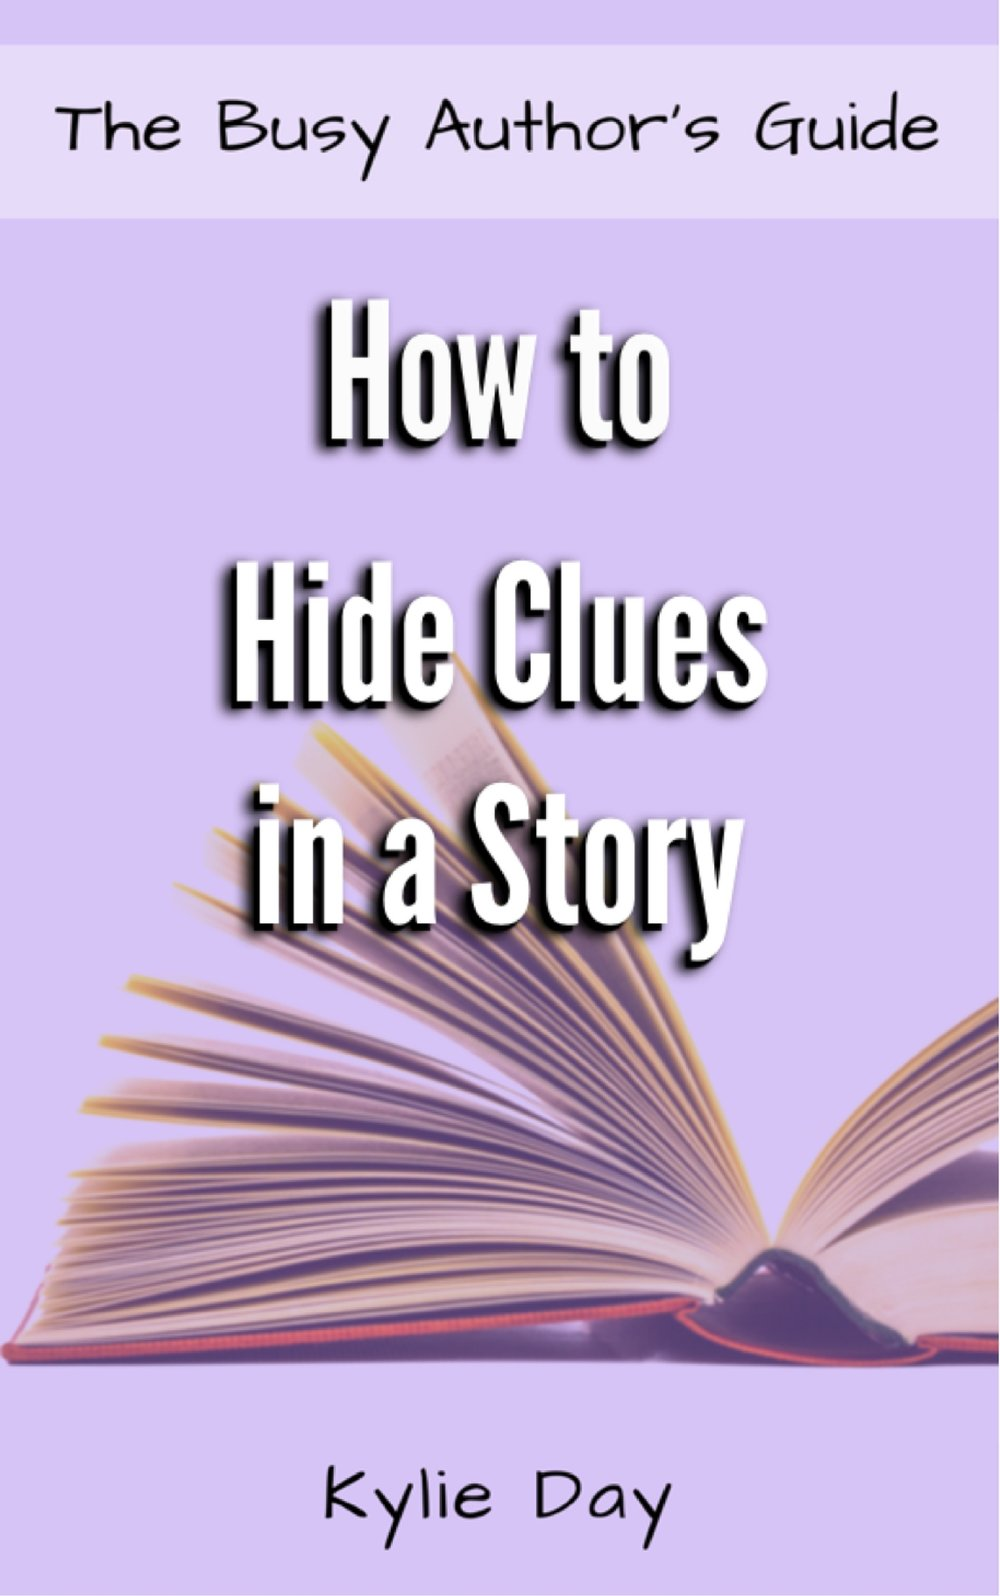 HOW TO HIDE CLUES IN A STORY